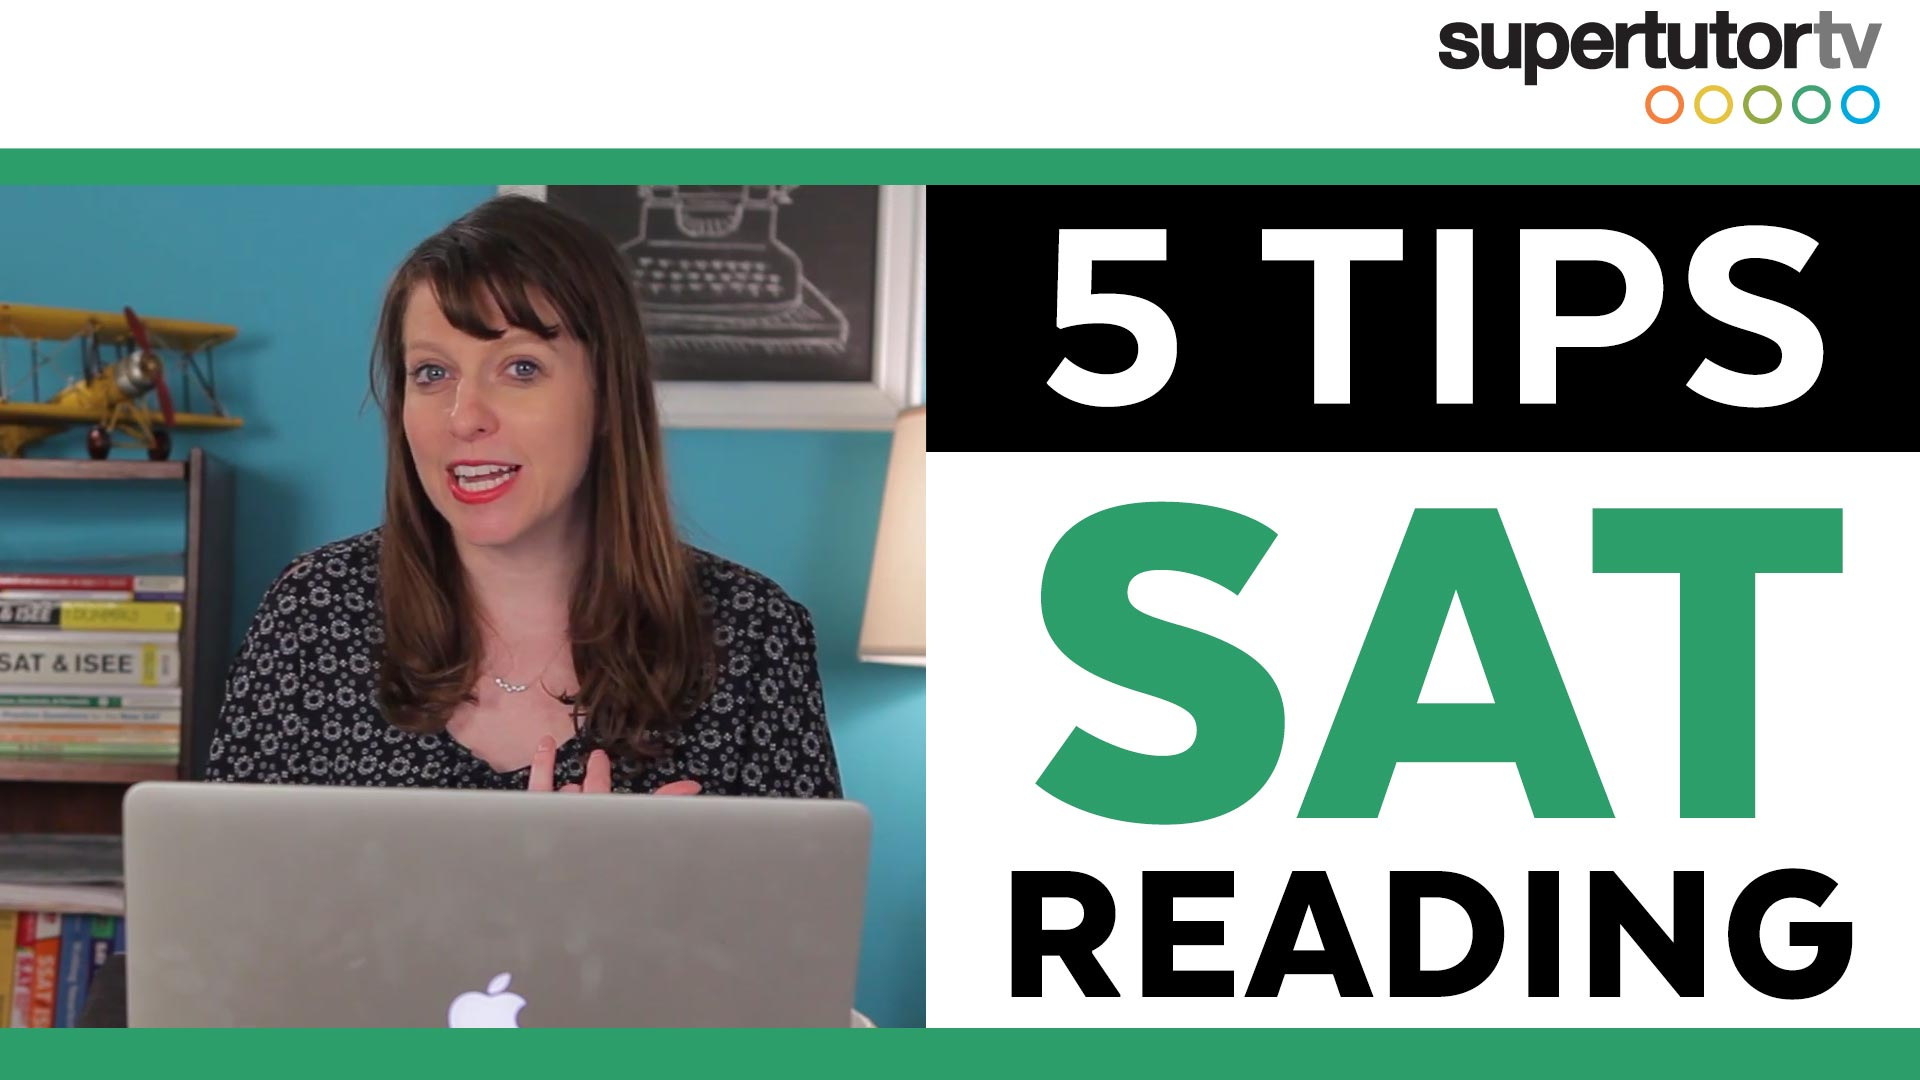 5 Tips for the new SAT reading section